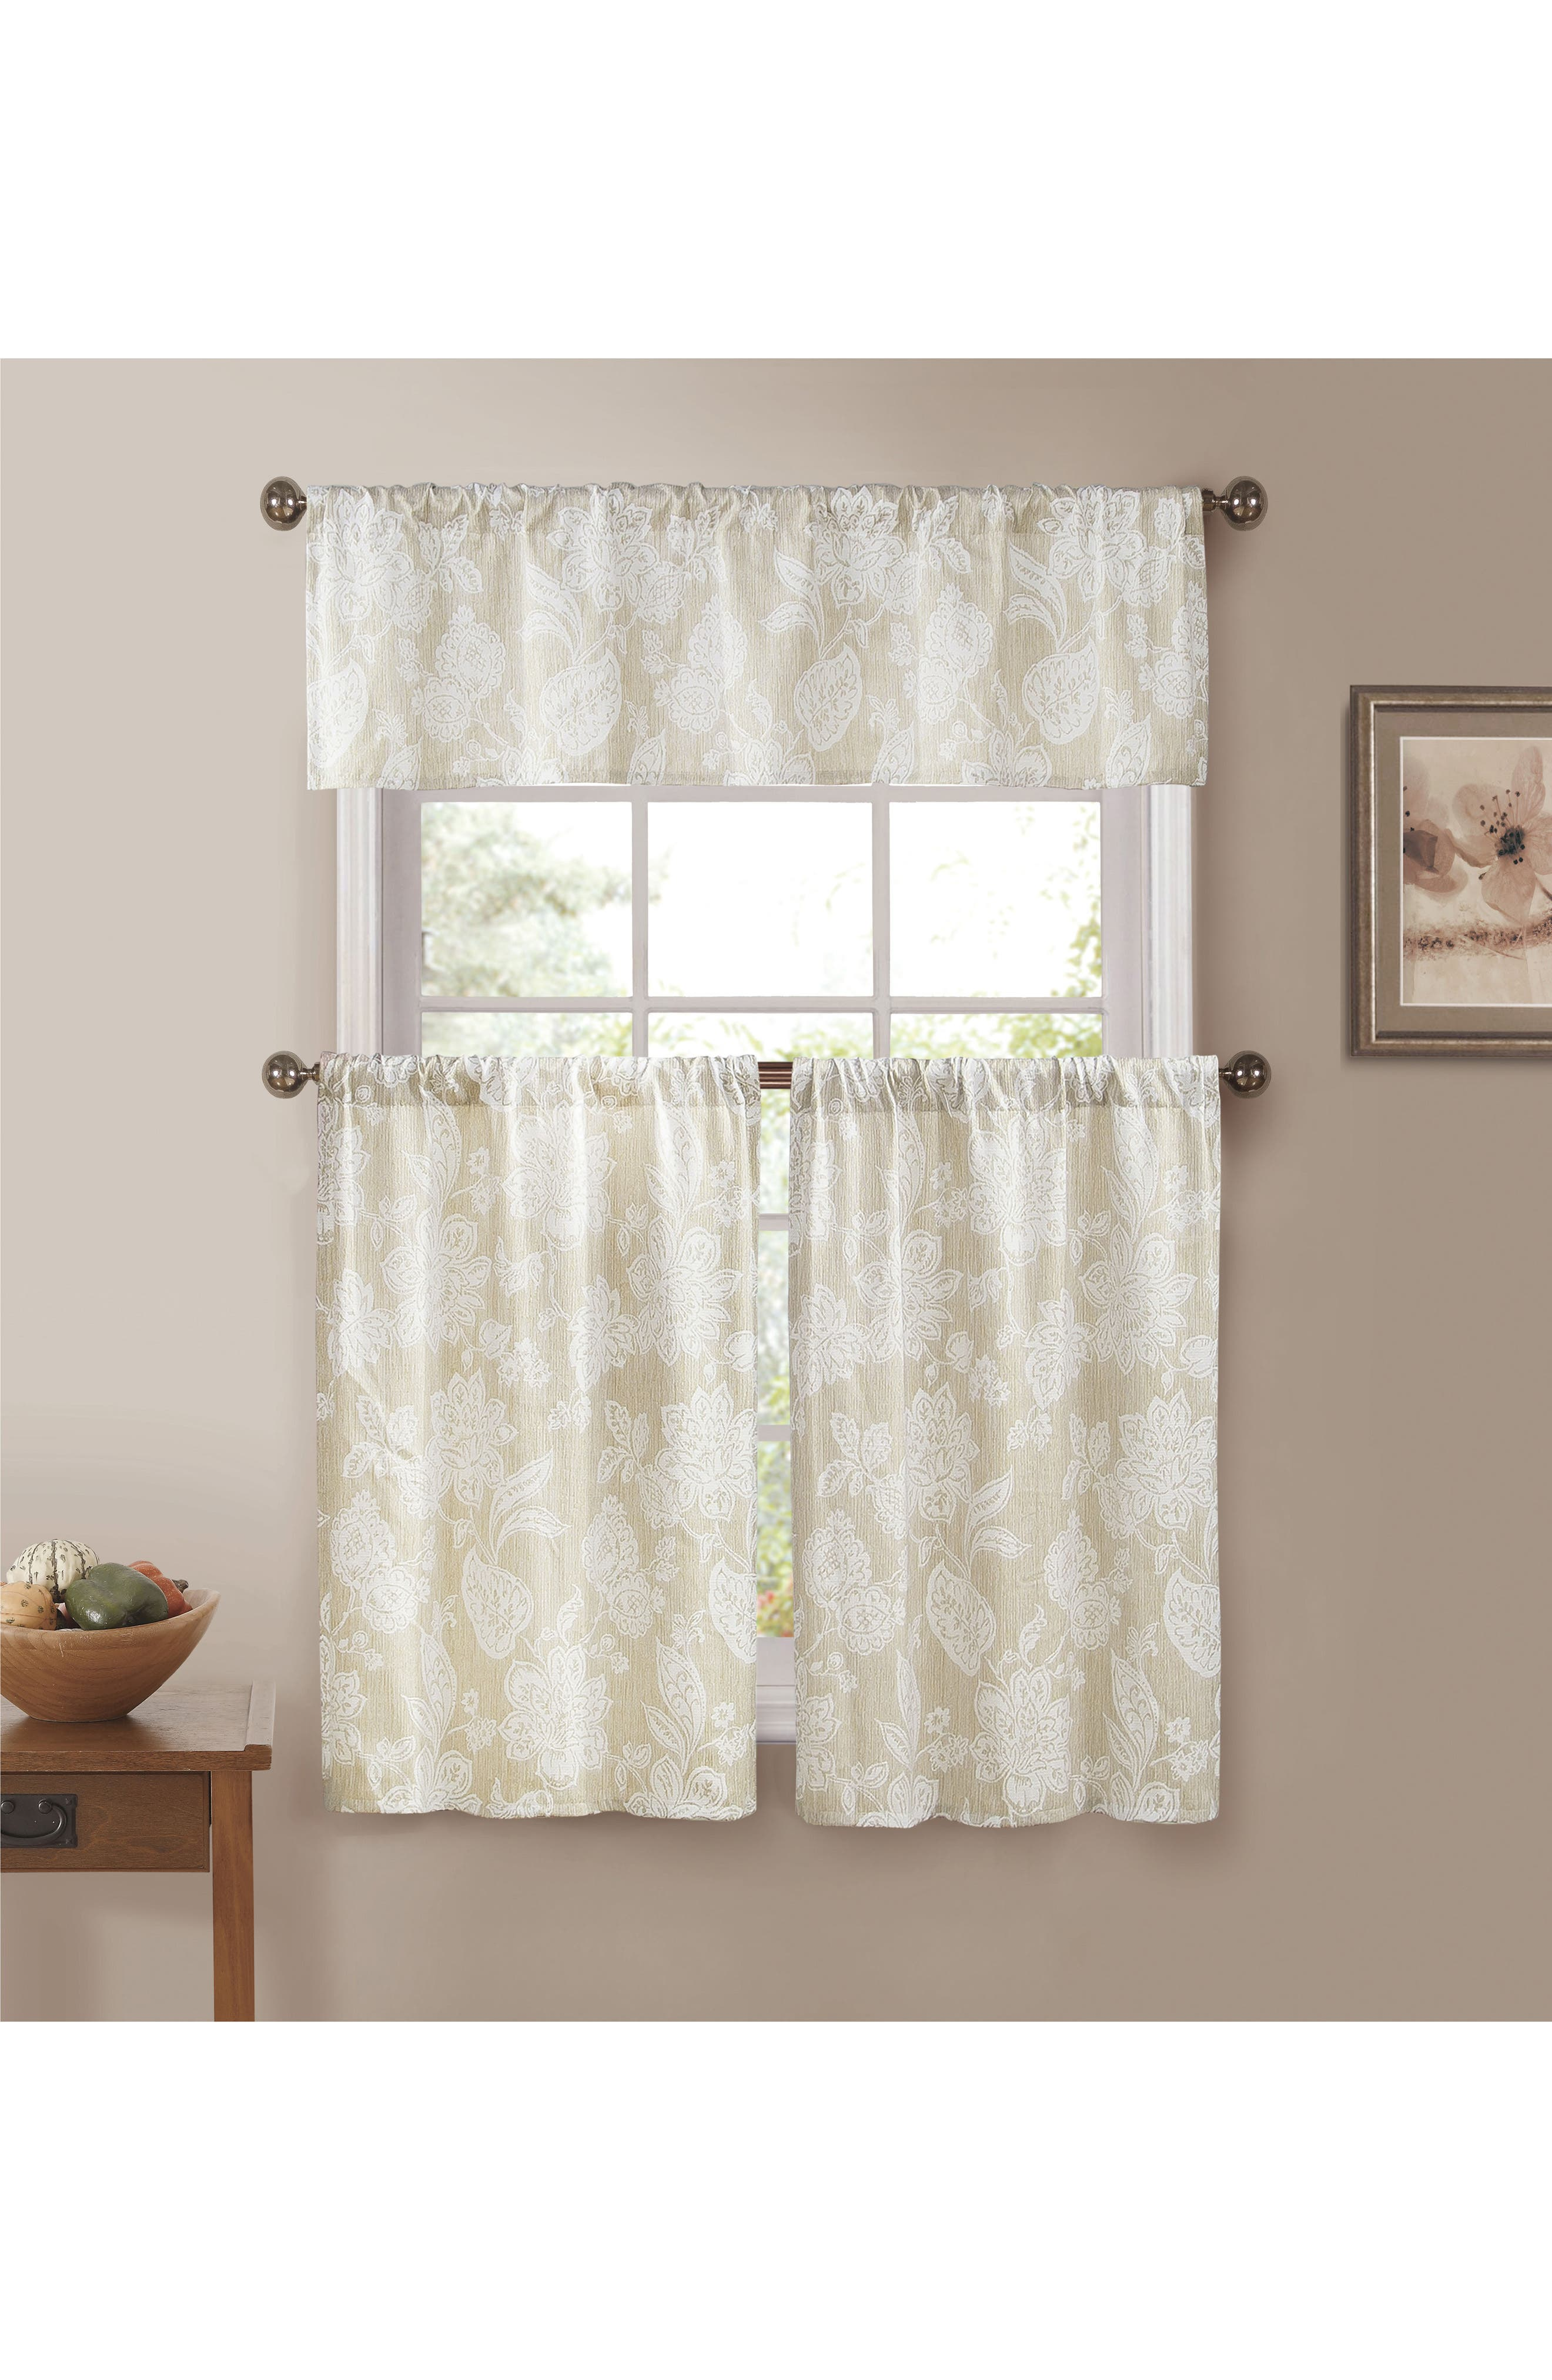 Ewva Set of 3 Tiered Jacquard Small Pole Top Window Panels,                             Main thumbnail 1, color,                             250